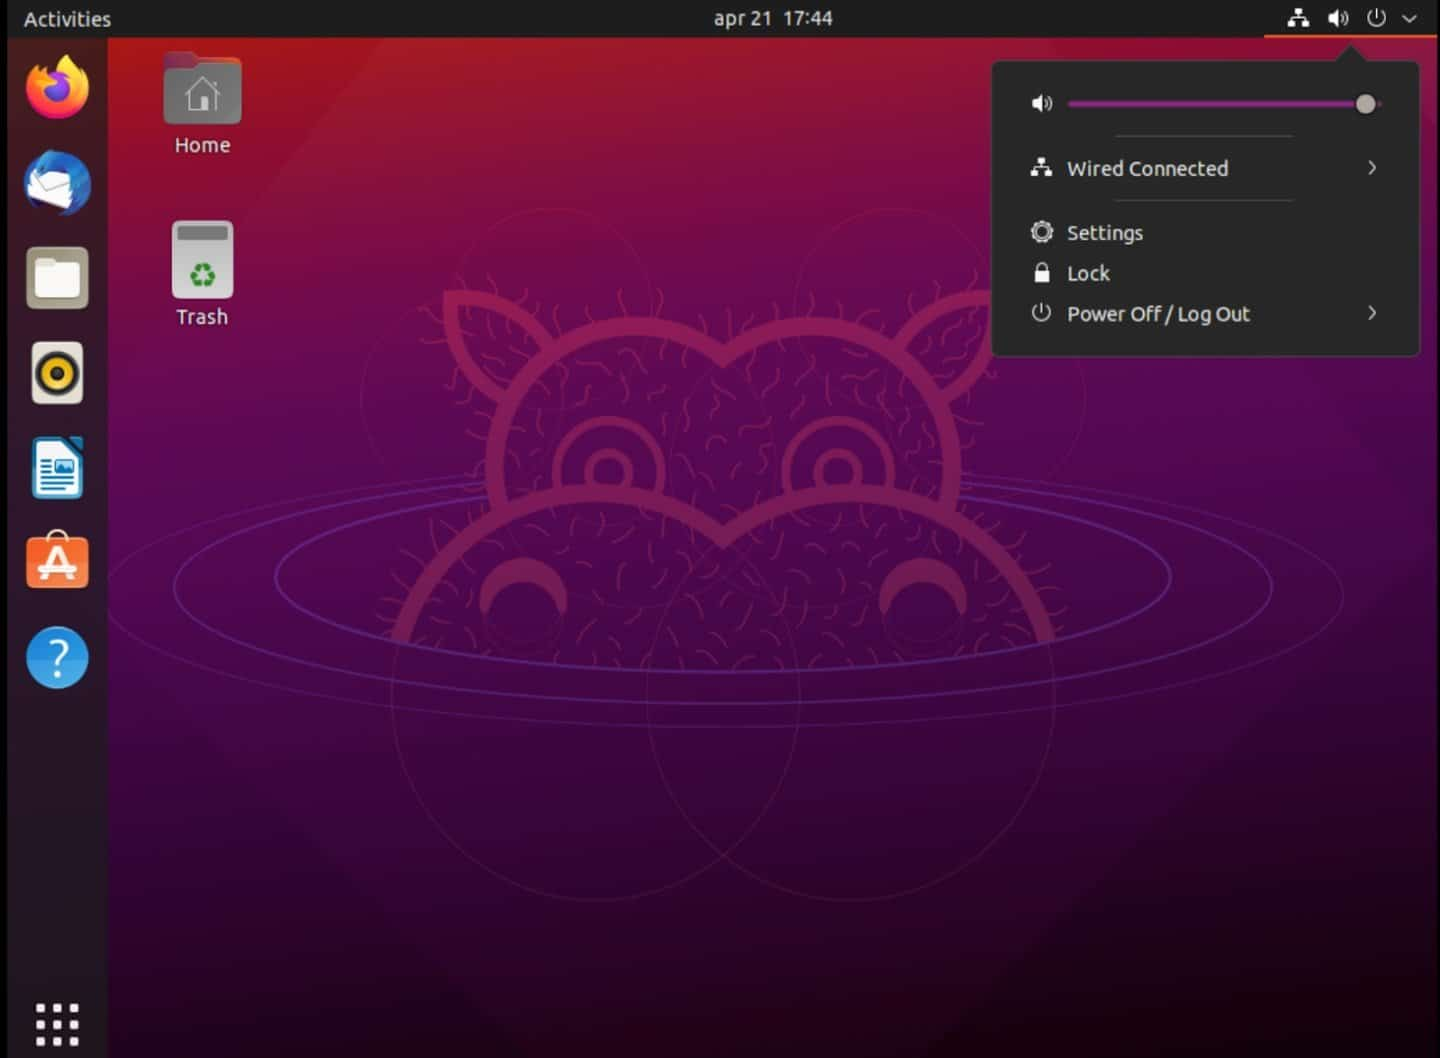 Ubuntu 21.04 (Hirsute Hippo) ISO's are ready to download